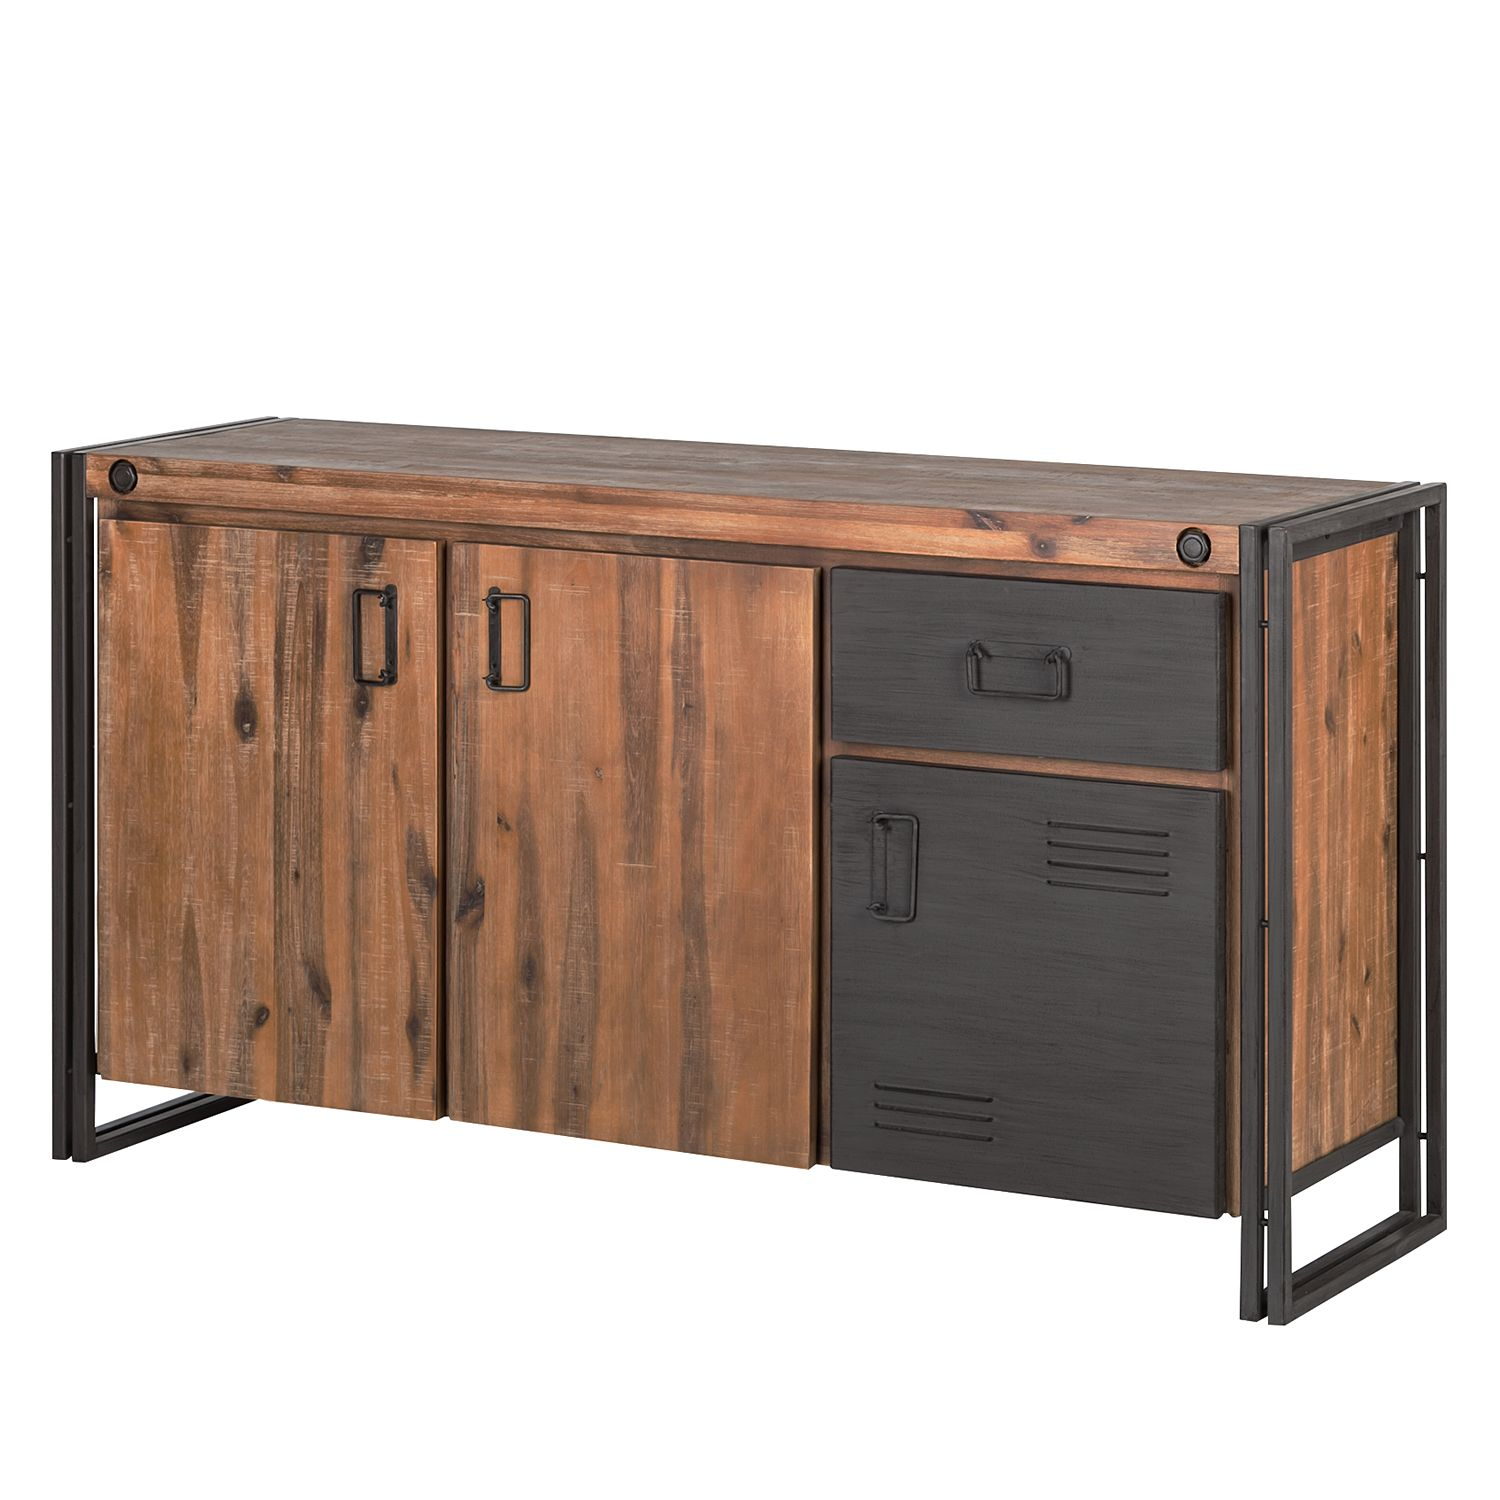 Sideboard Manchester I - Akazie massiv/Metall